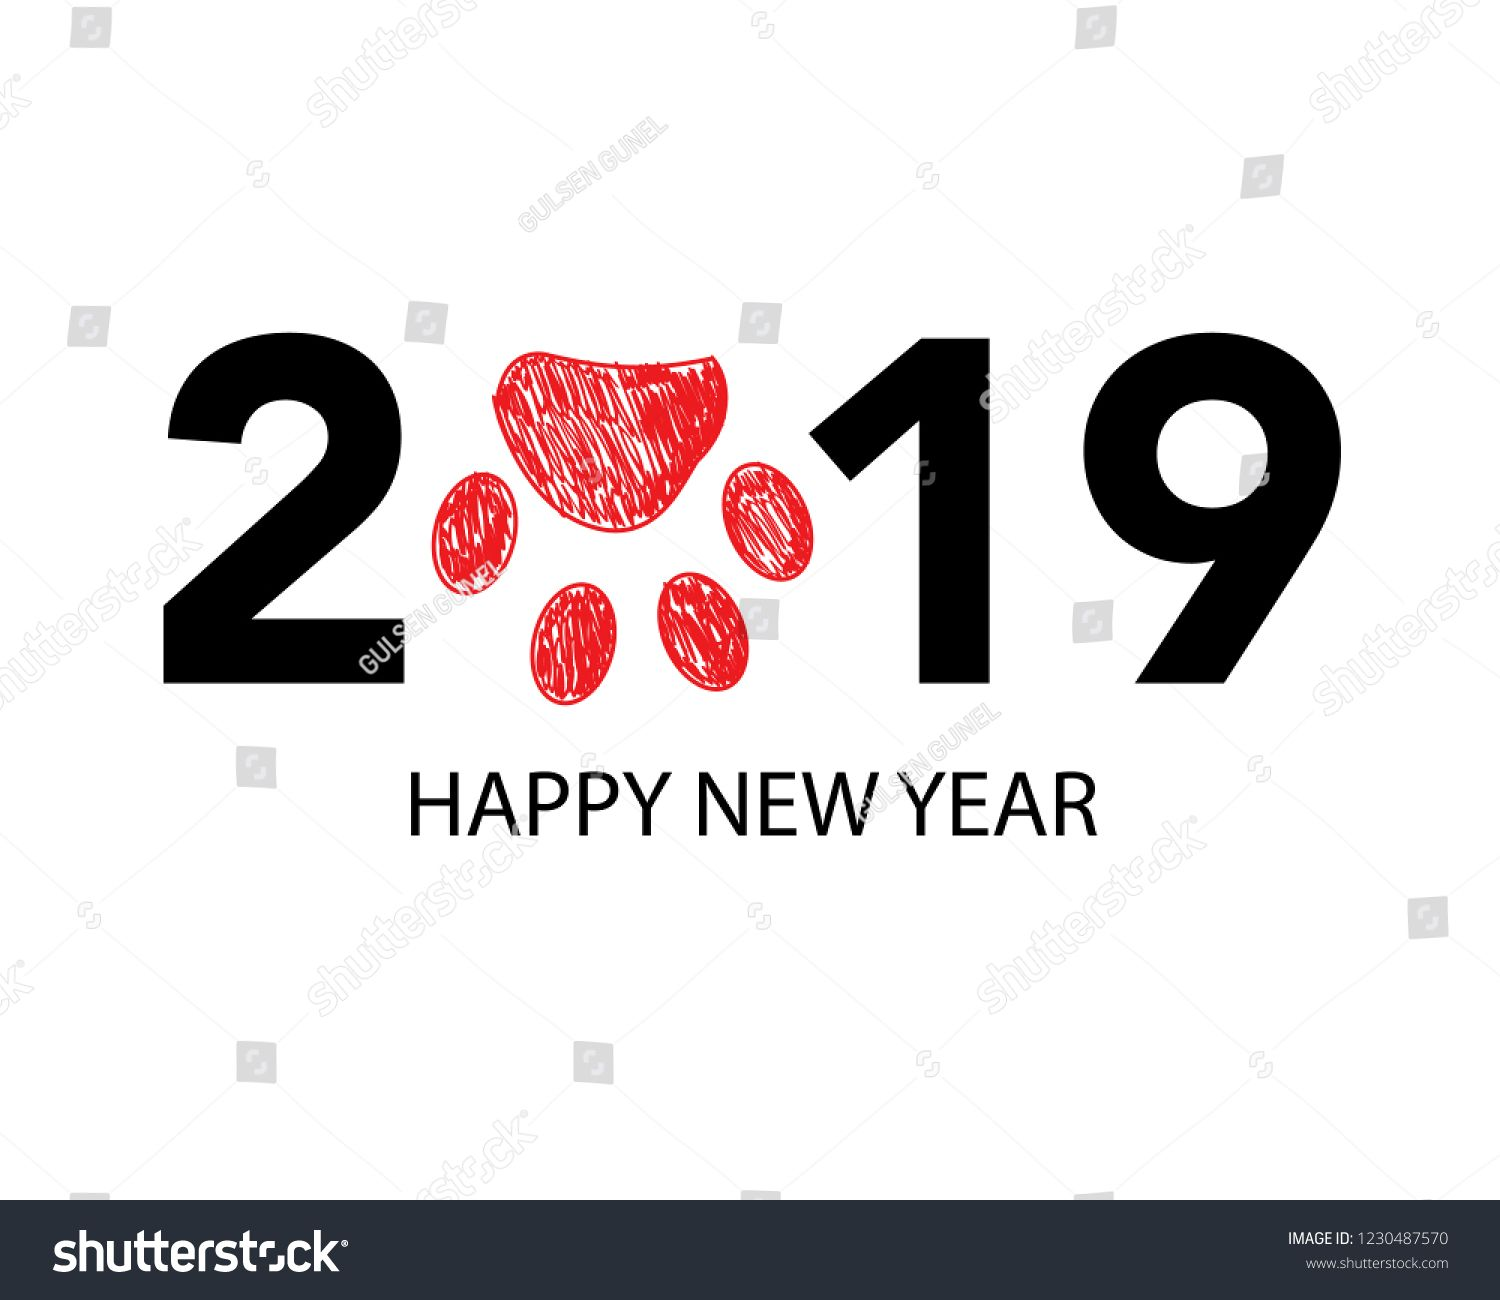 Happy new year greeting card with 2019 text and doodle red